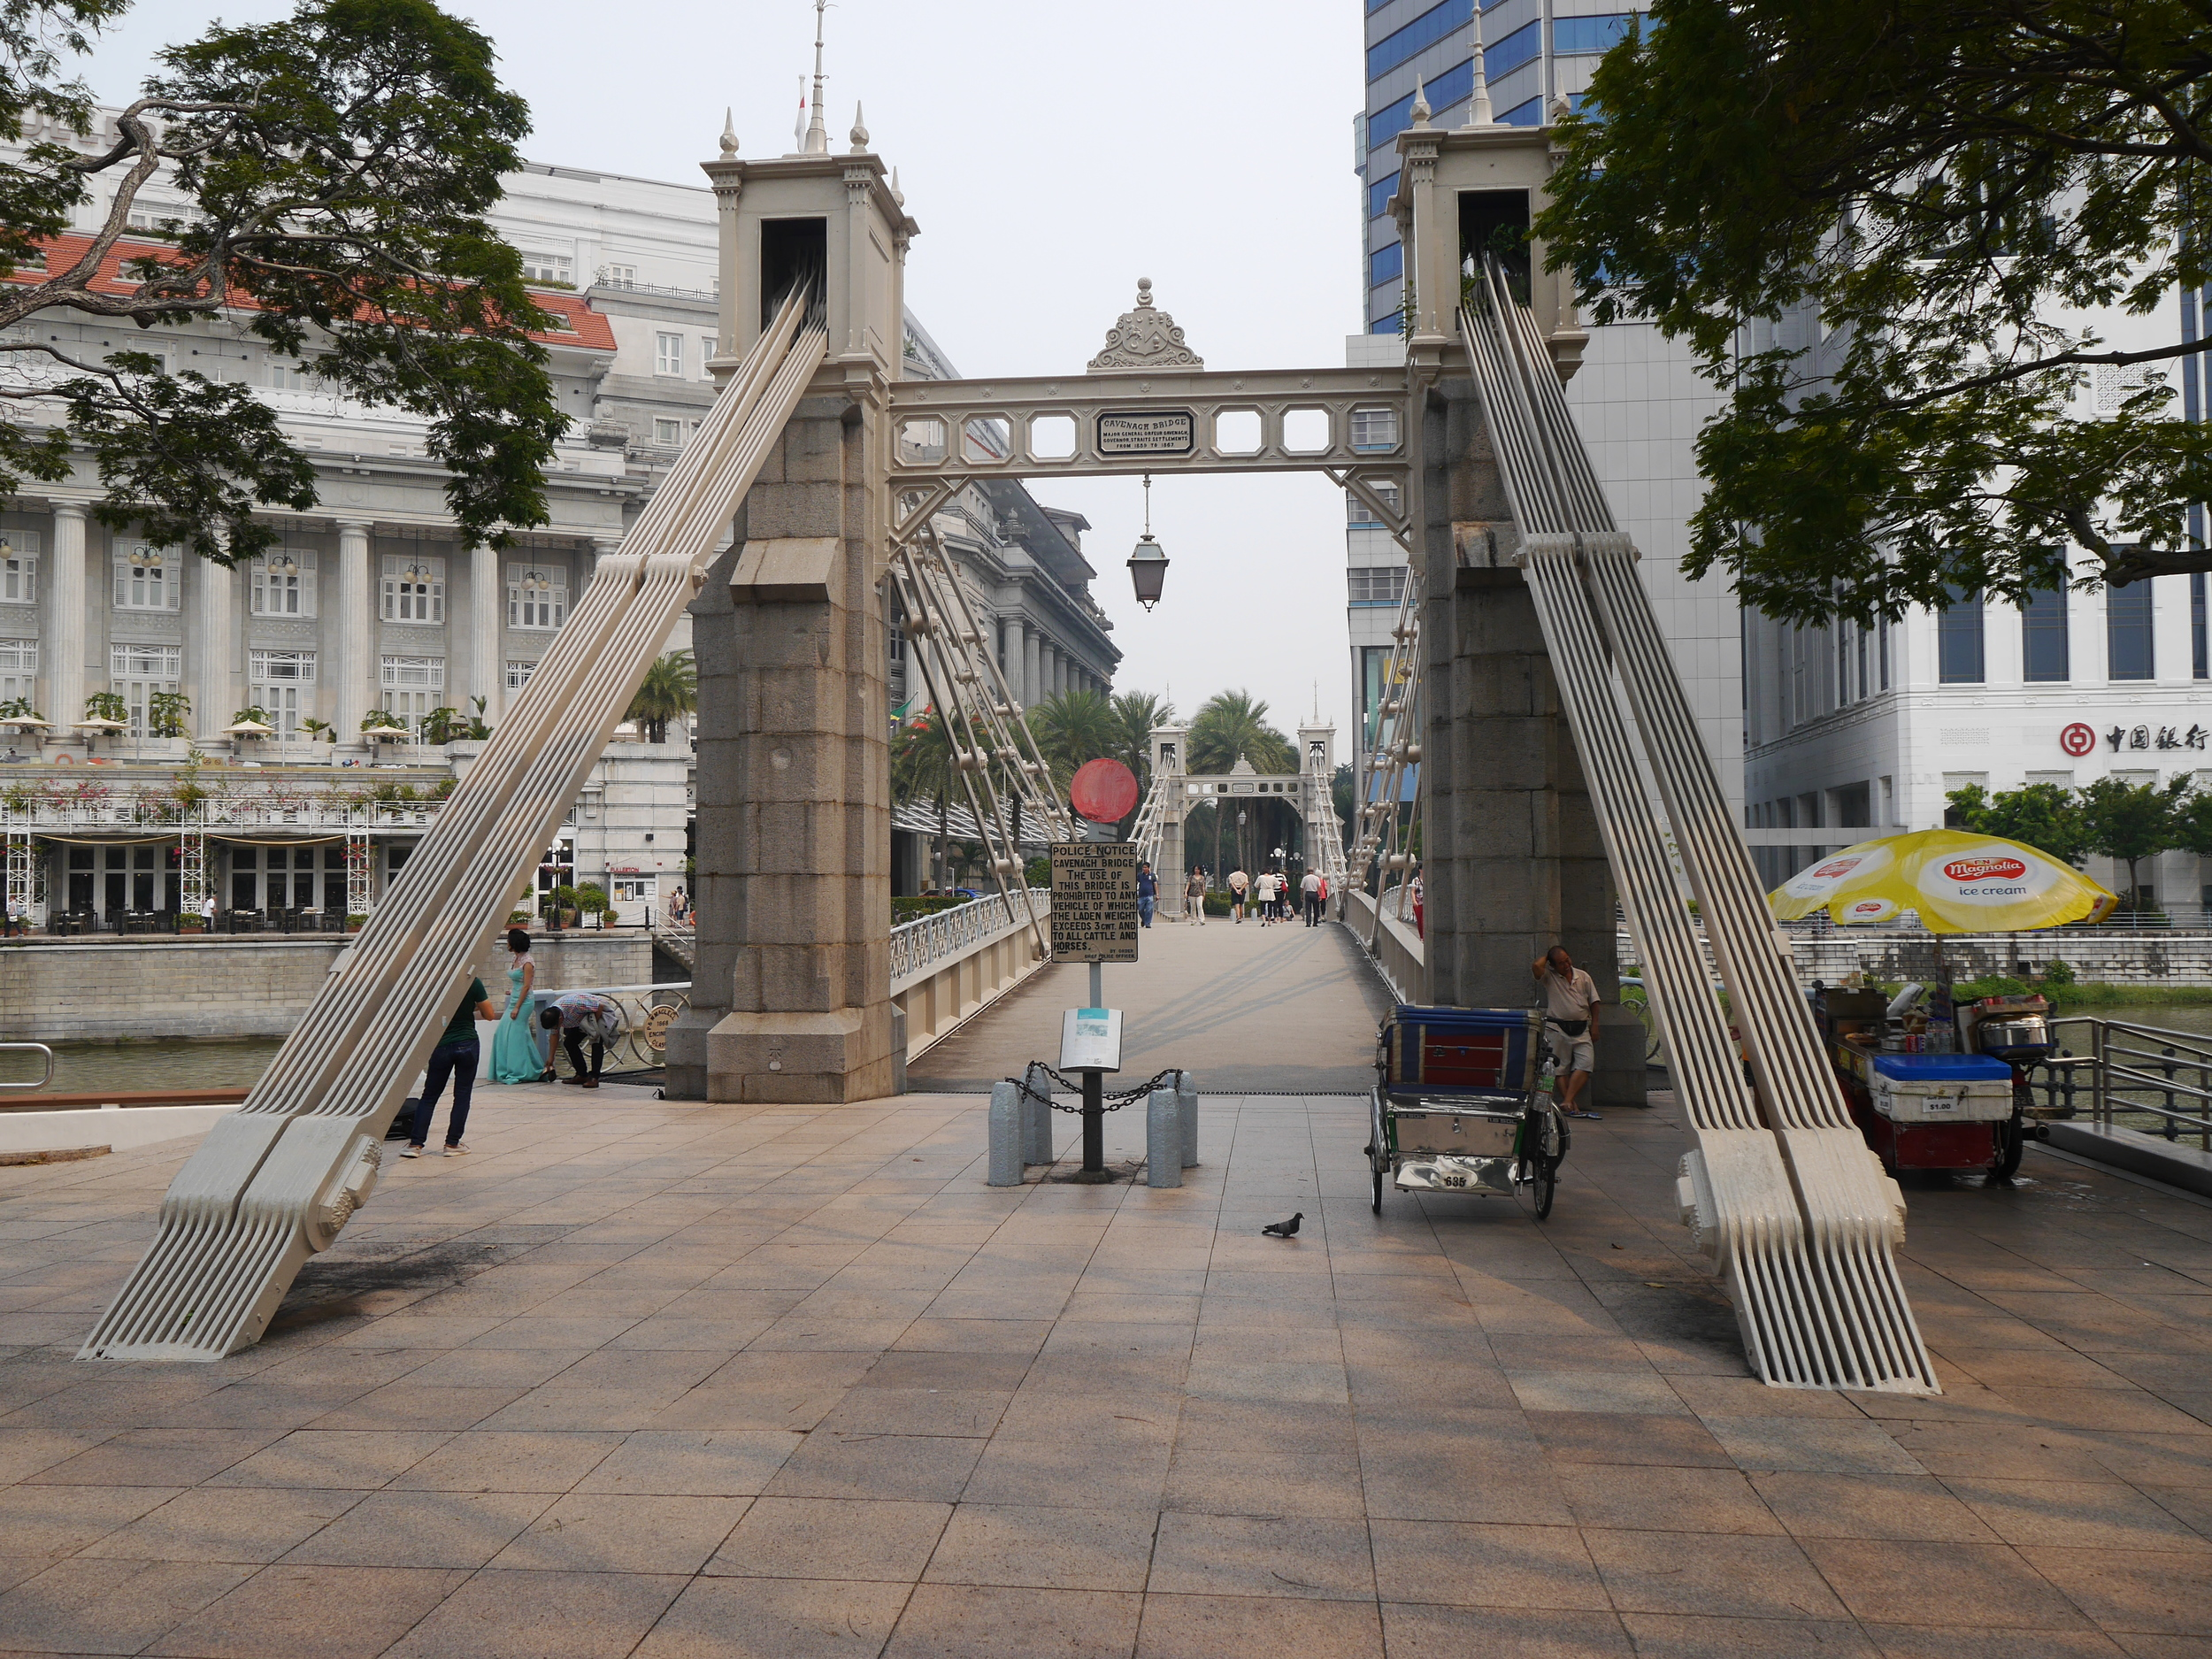 The Cavenagh Bridge (pretty sure that's not a local name). Also another glamor shoot going on to the left.